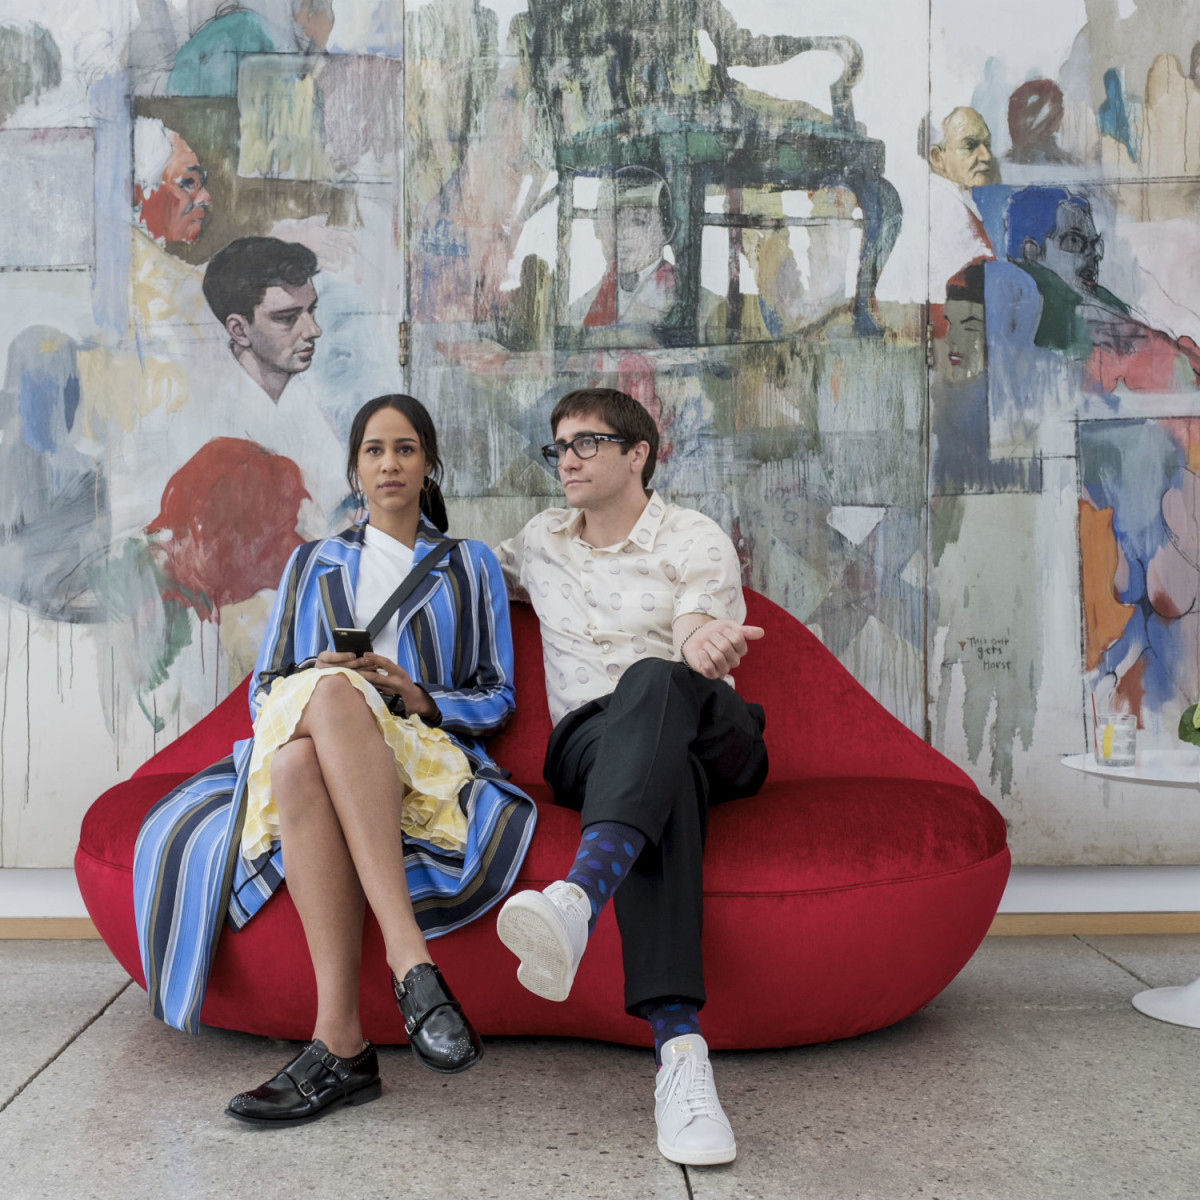 Zawe Ashton and Jake Gyllenhaal in Velvet Buzzsaw